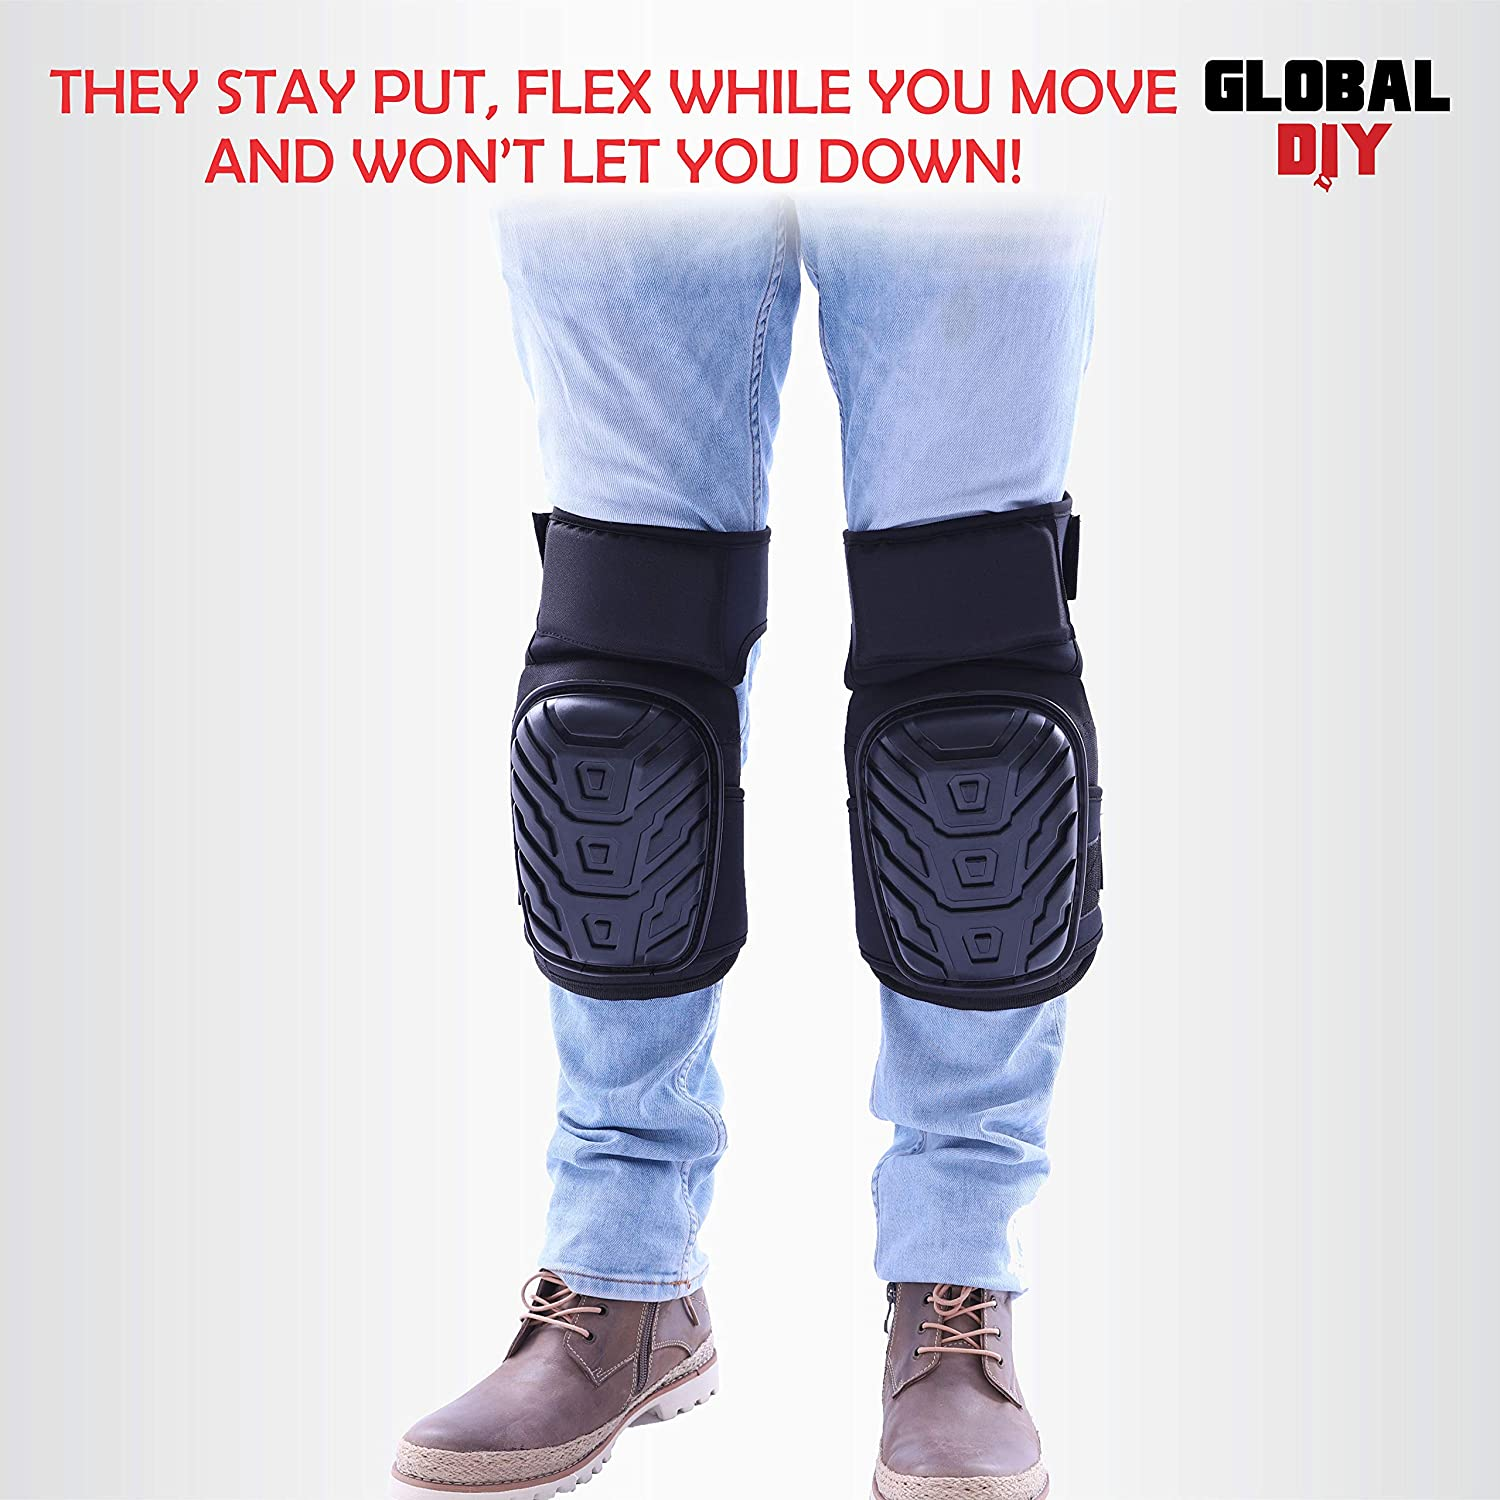 FOR BIKE GARDENING KNEELING MOUNTAIN CLIMBING KNEE PADS FOAM PADDING COMFORTABLE GEL CUSHIONING WITH STURDY STRAPS FOR FIRM GRIP AND EXCEPTIONAL PROFESSIONAL CONSTRUCTION GLOBAL DIY